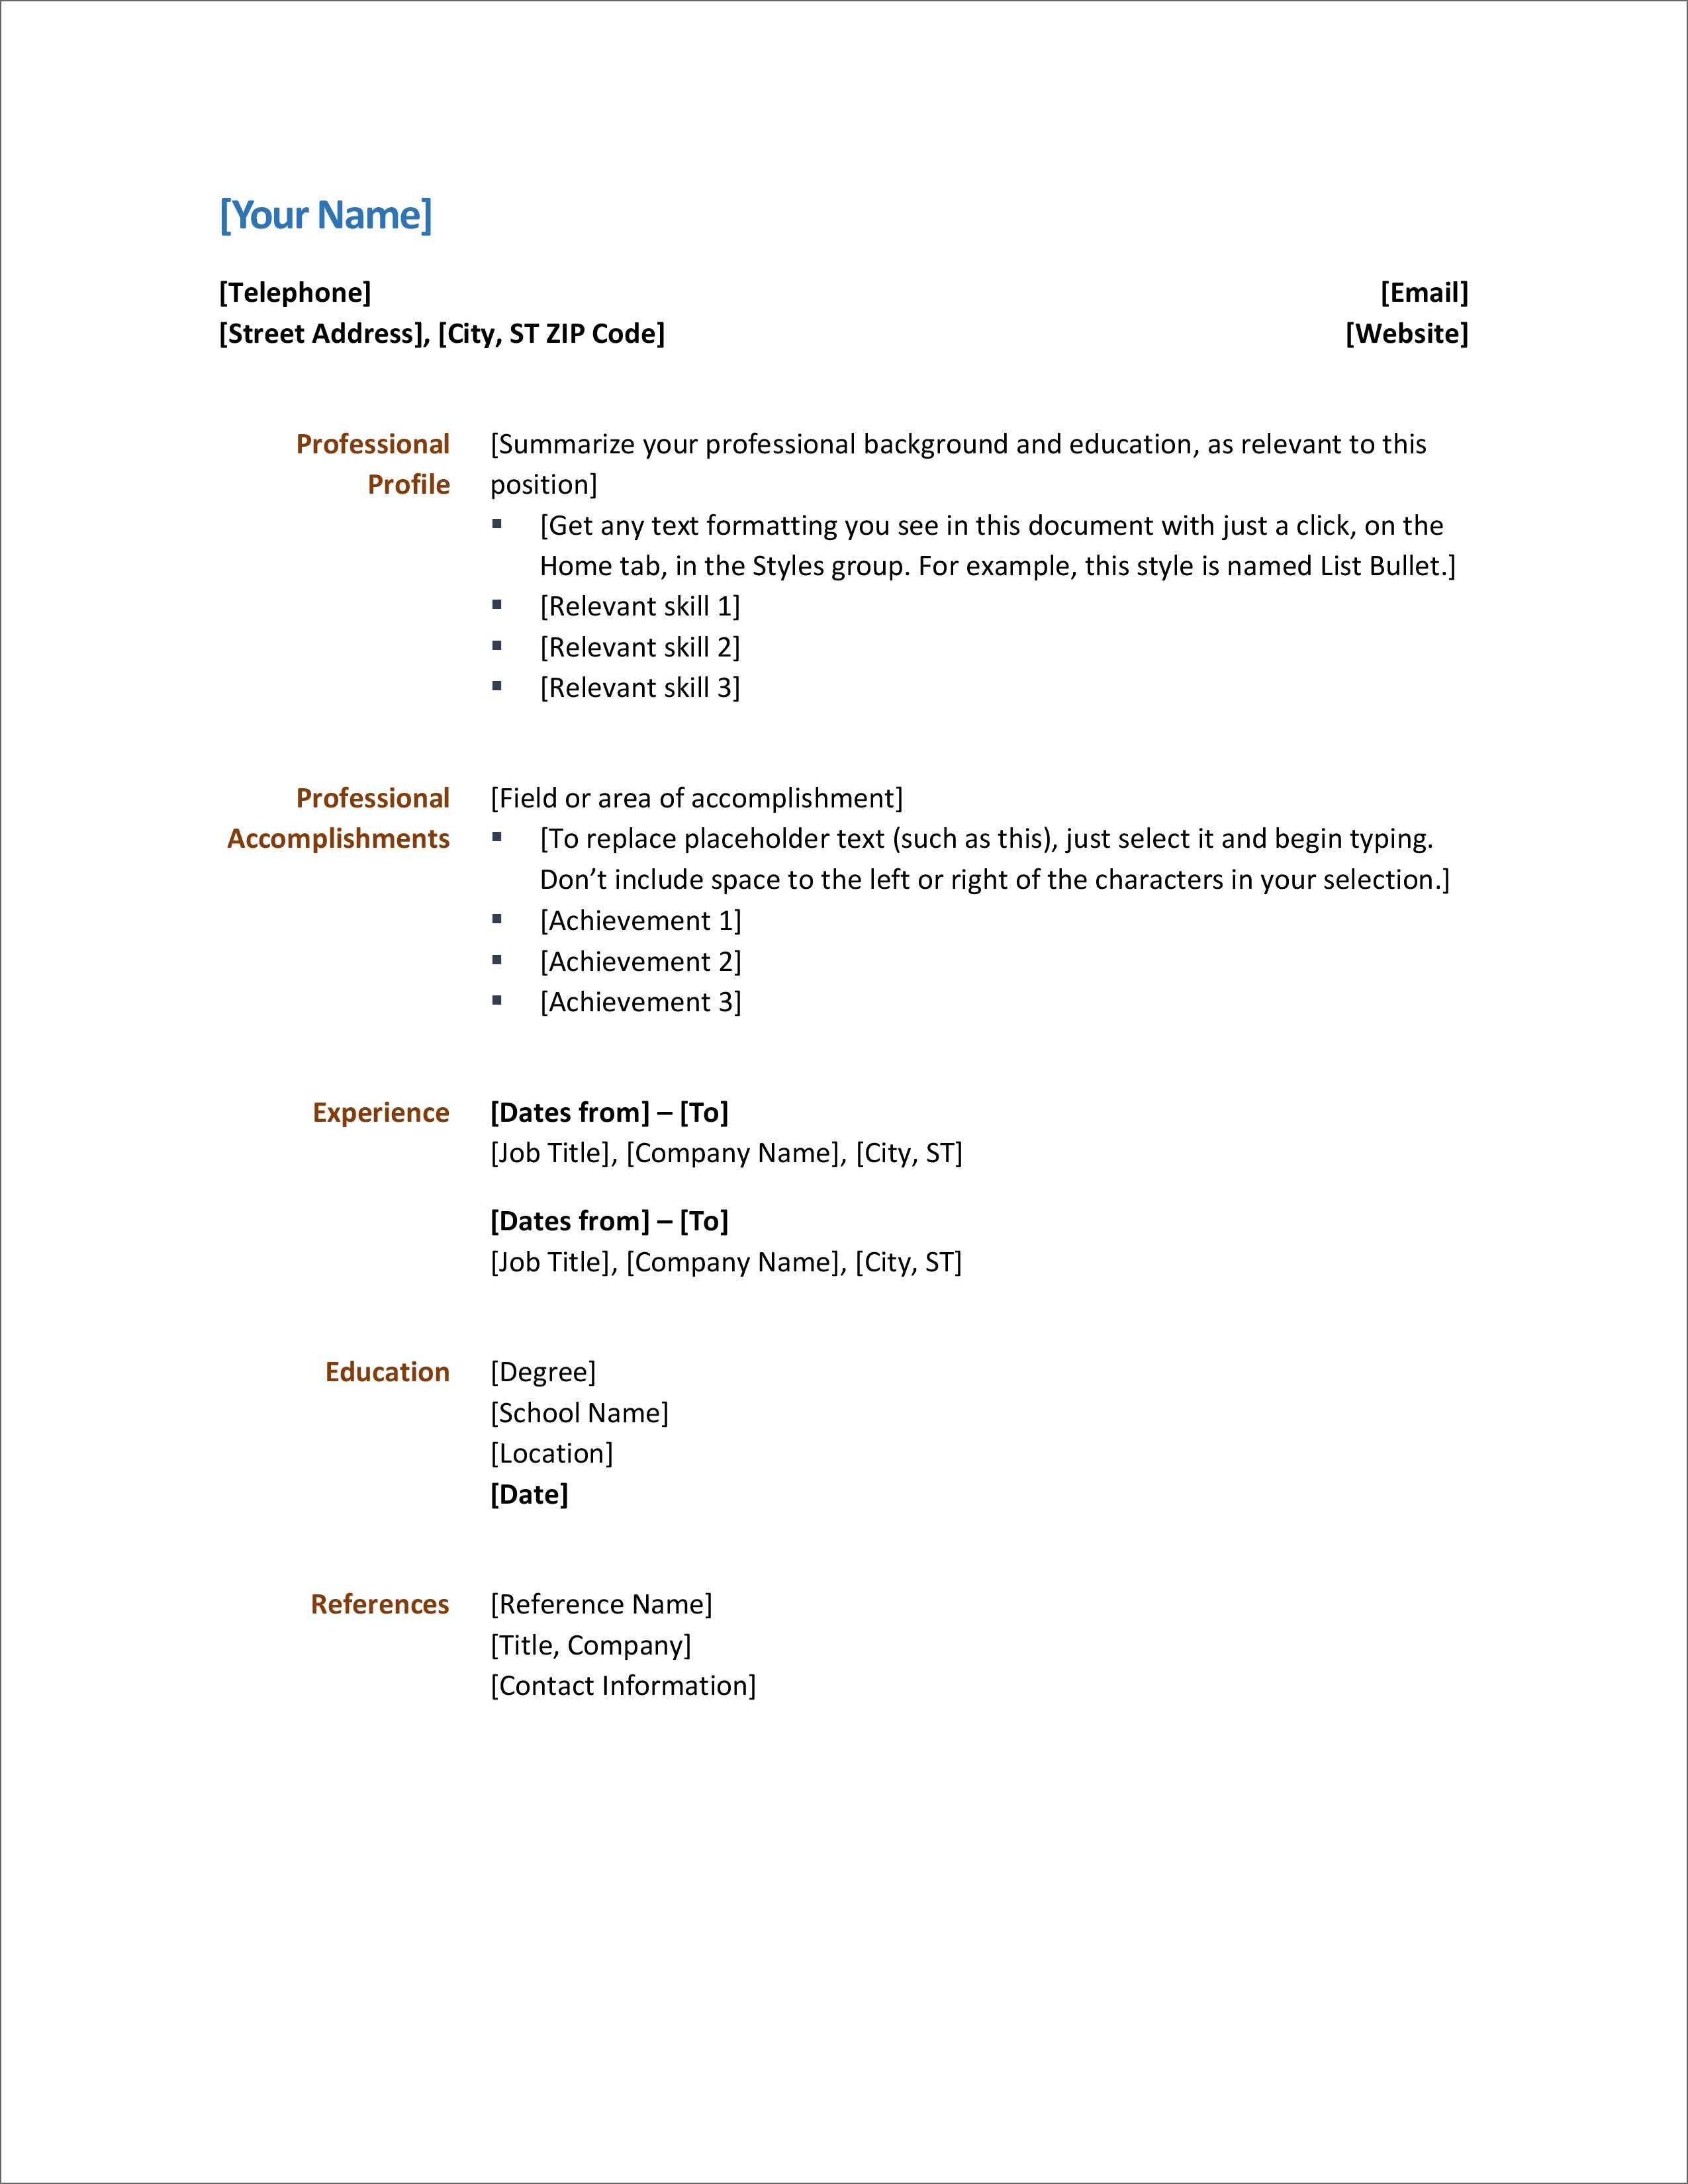 007 Marvelou Simple Job Resume Template Inspiration  Download FirstFull